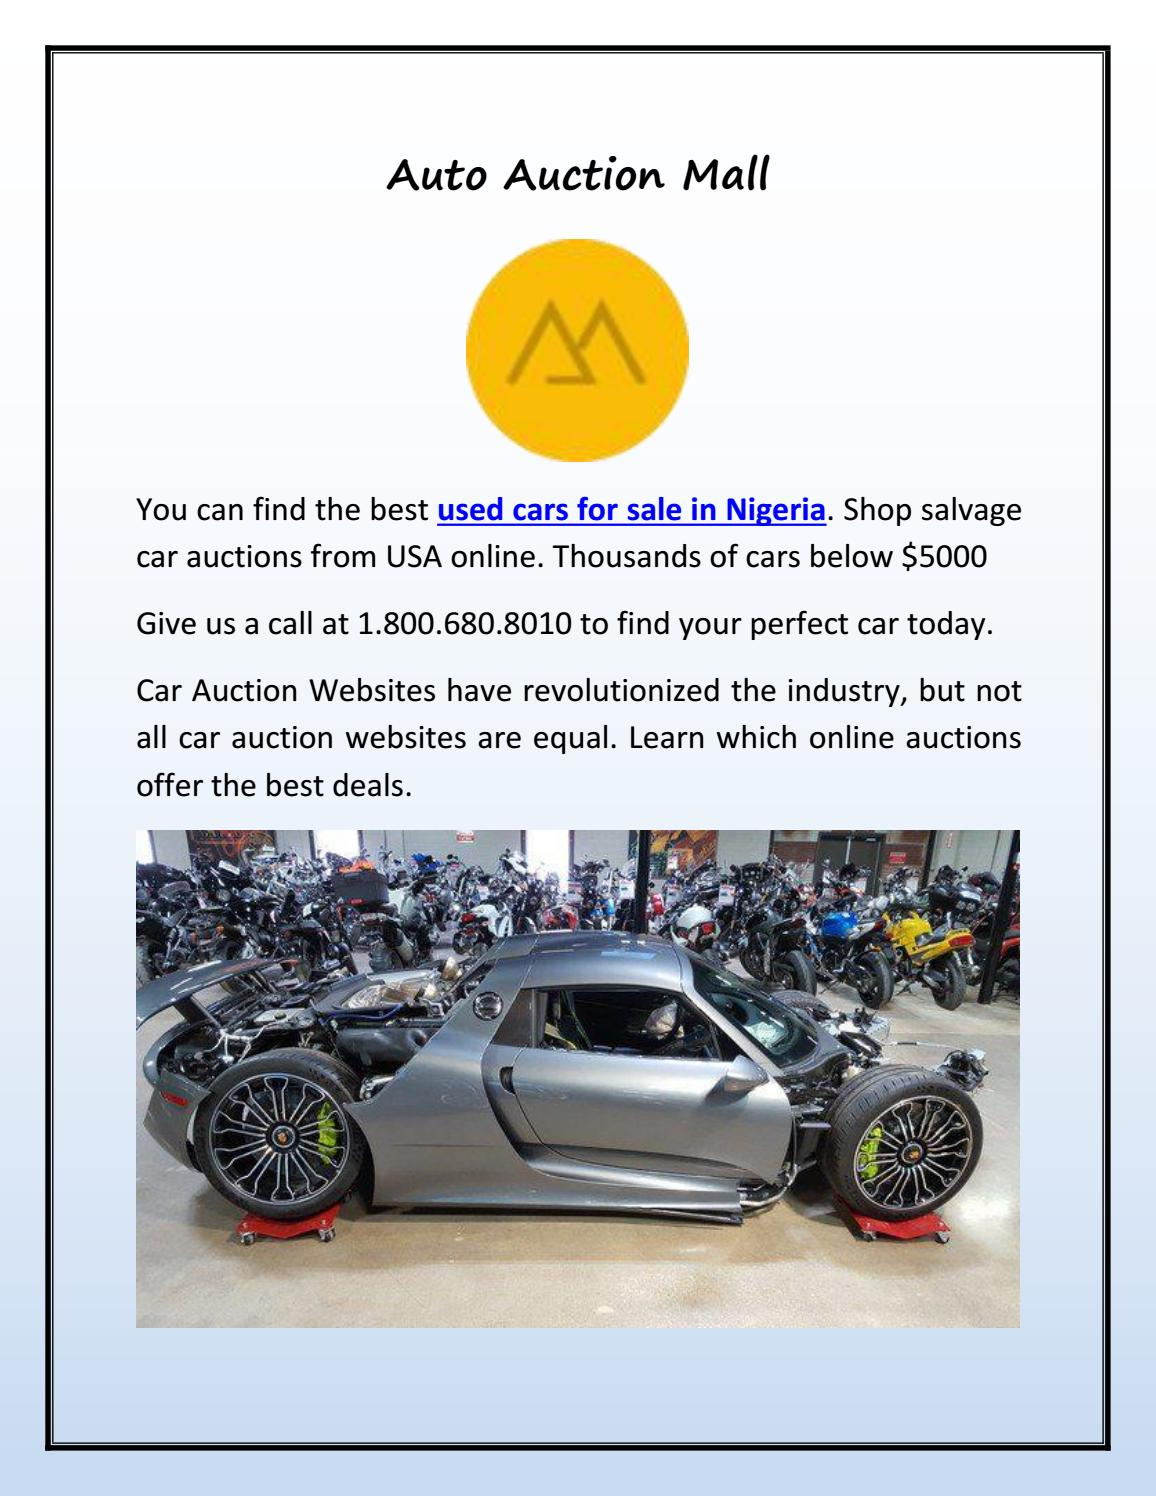 Used Cars For Sale In Nigeria By Auto Auction Mall Issuu